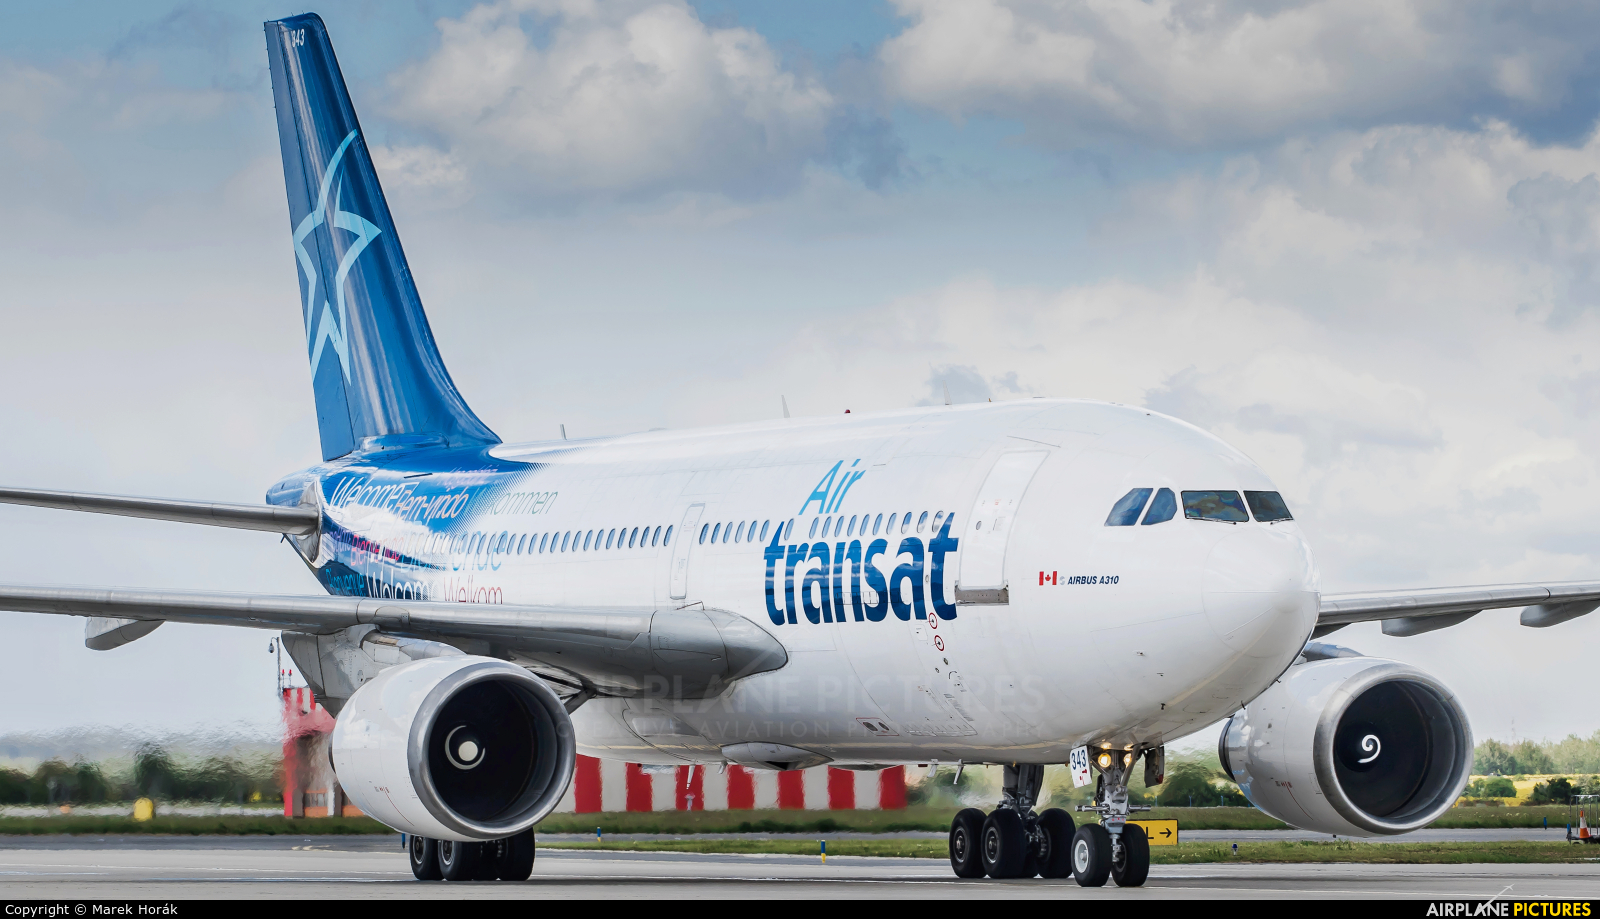 Air Transat C-GTSH aircraft at Prague - Václav Havel